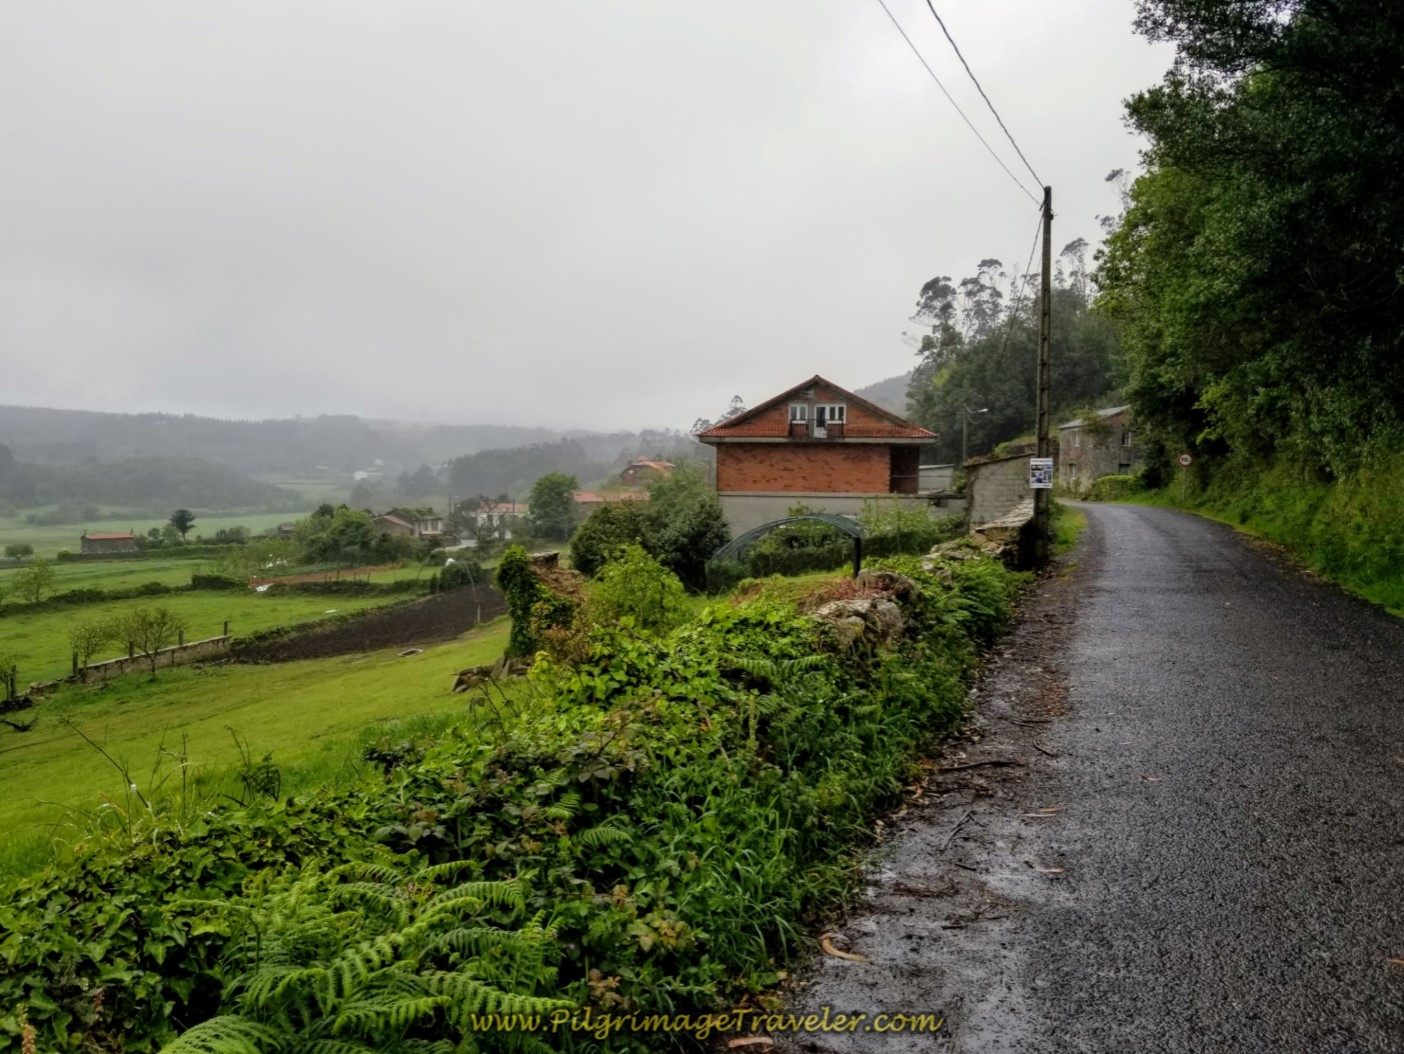 The Town of Morquintián on the Camino Finisterre to Muxia